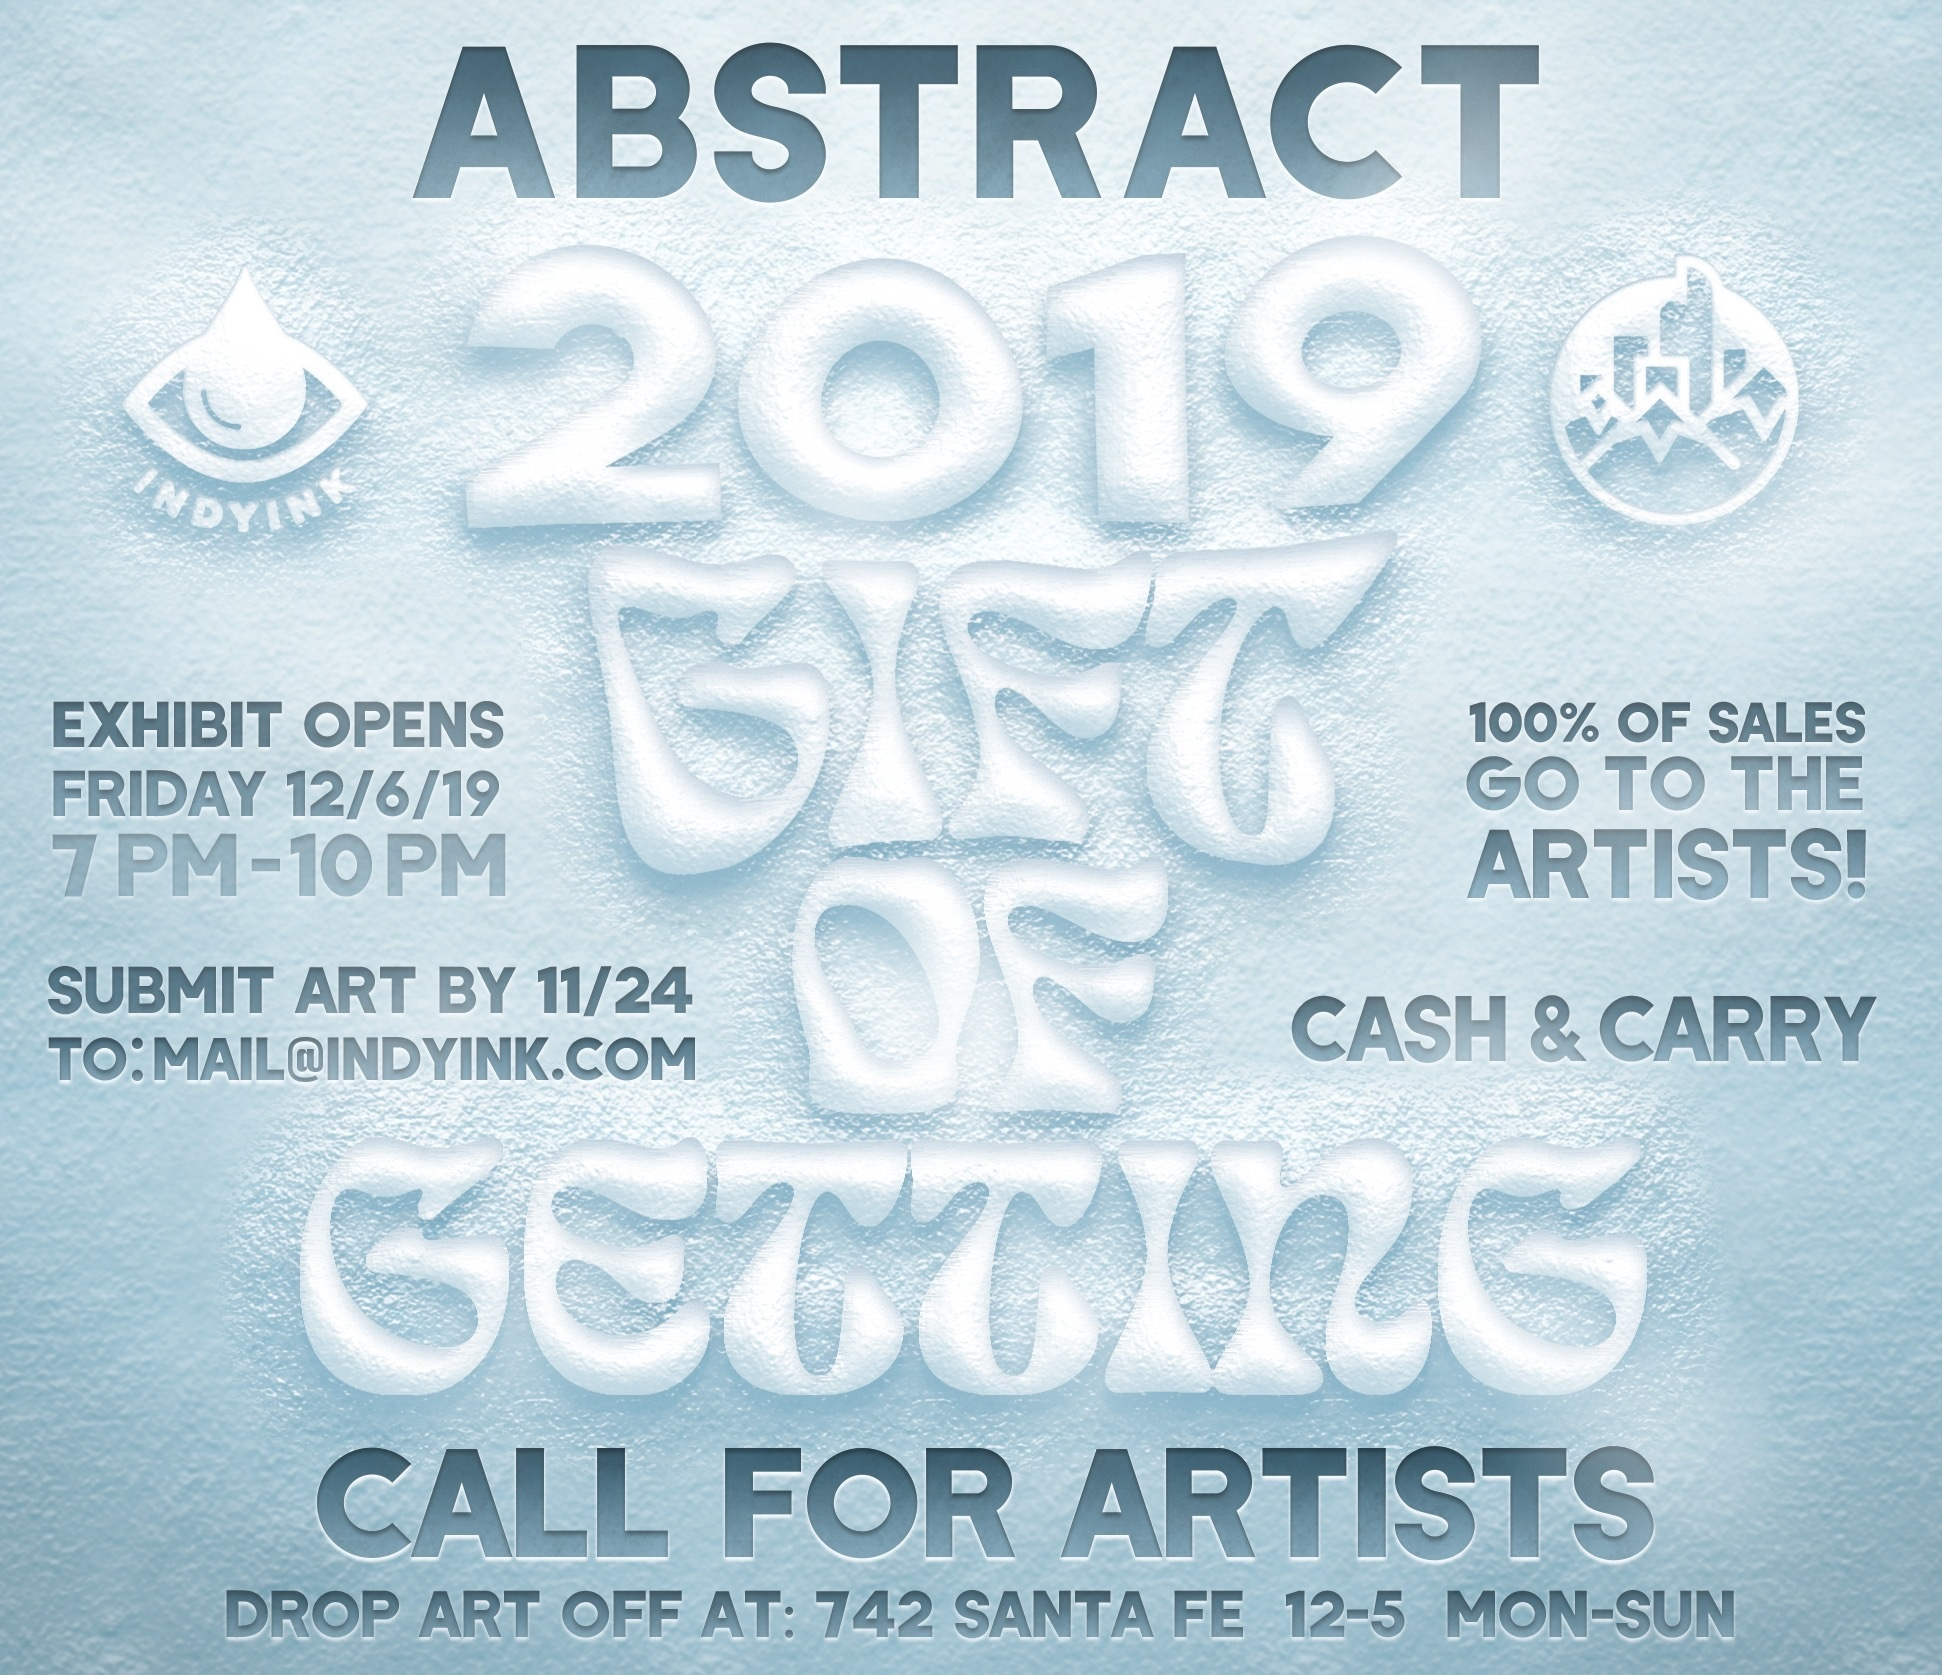 Gift of Getting Call for Artists~